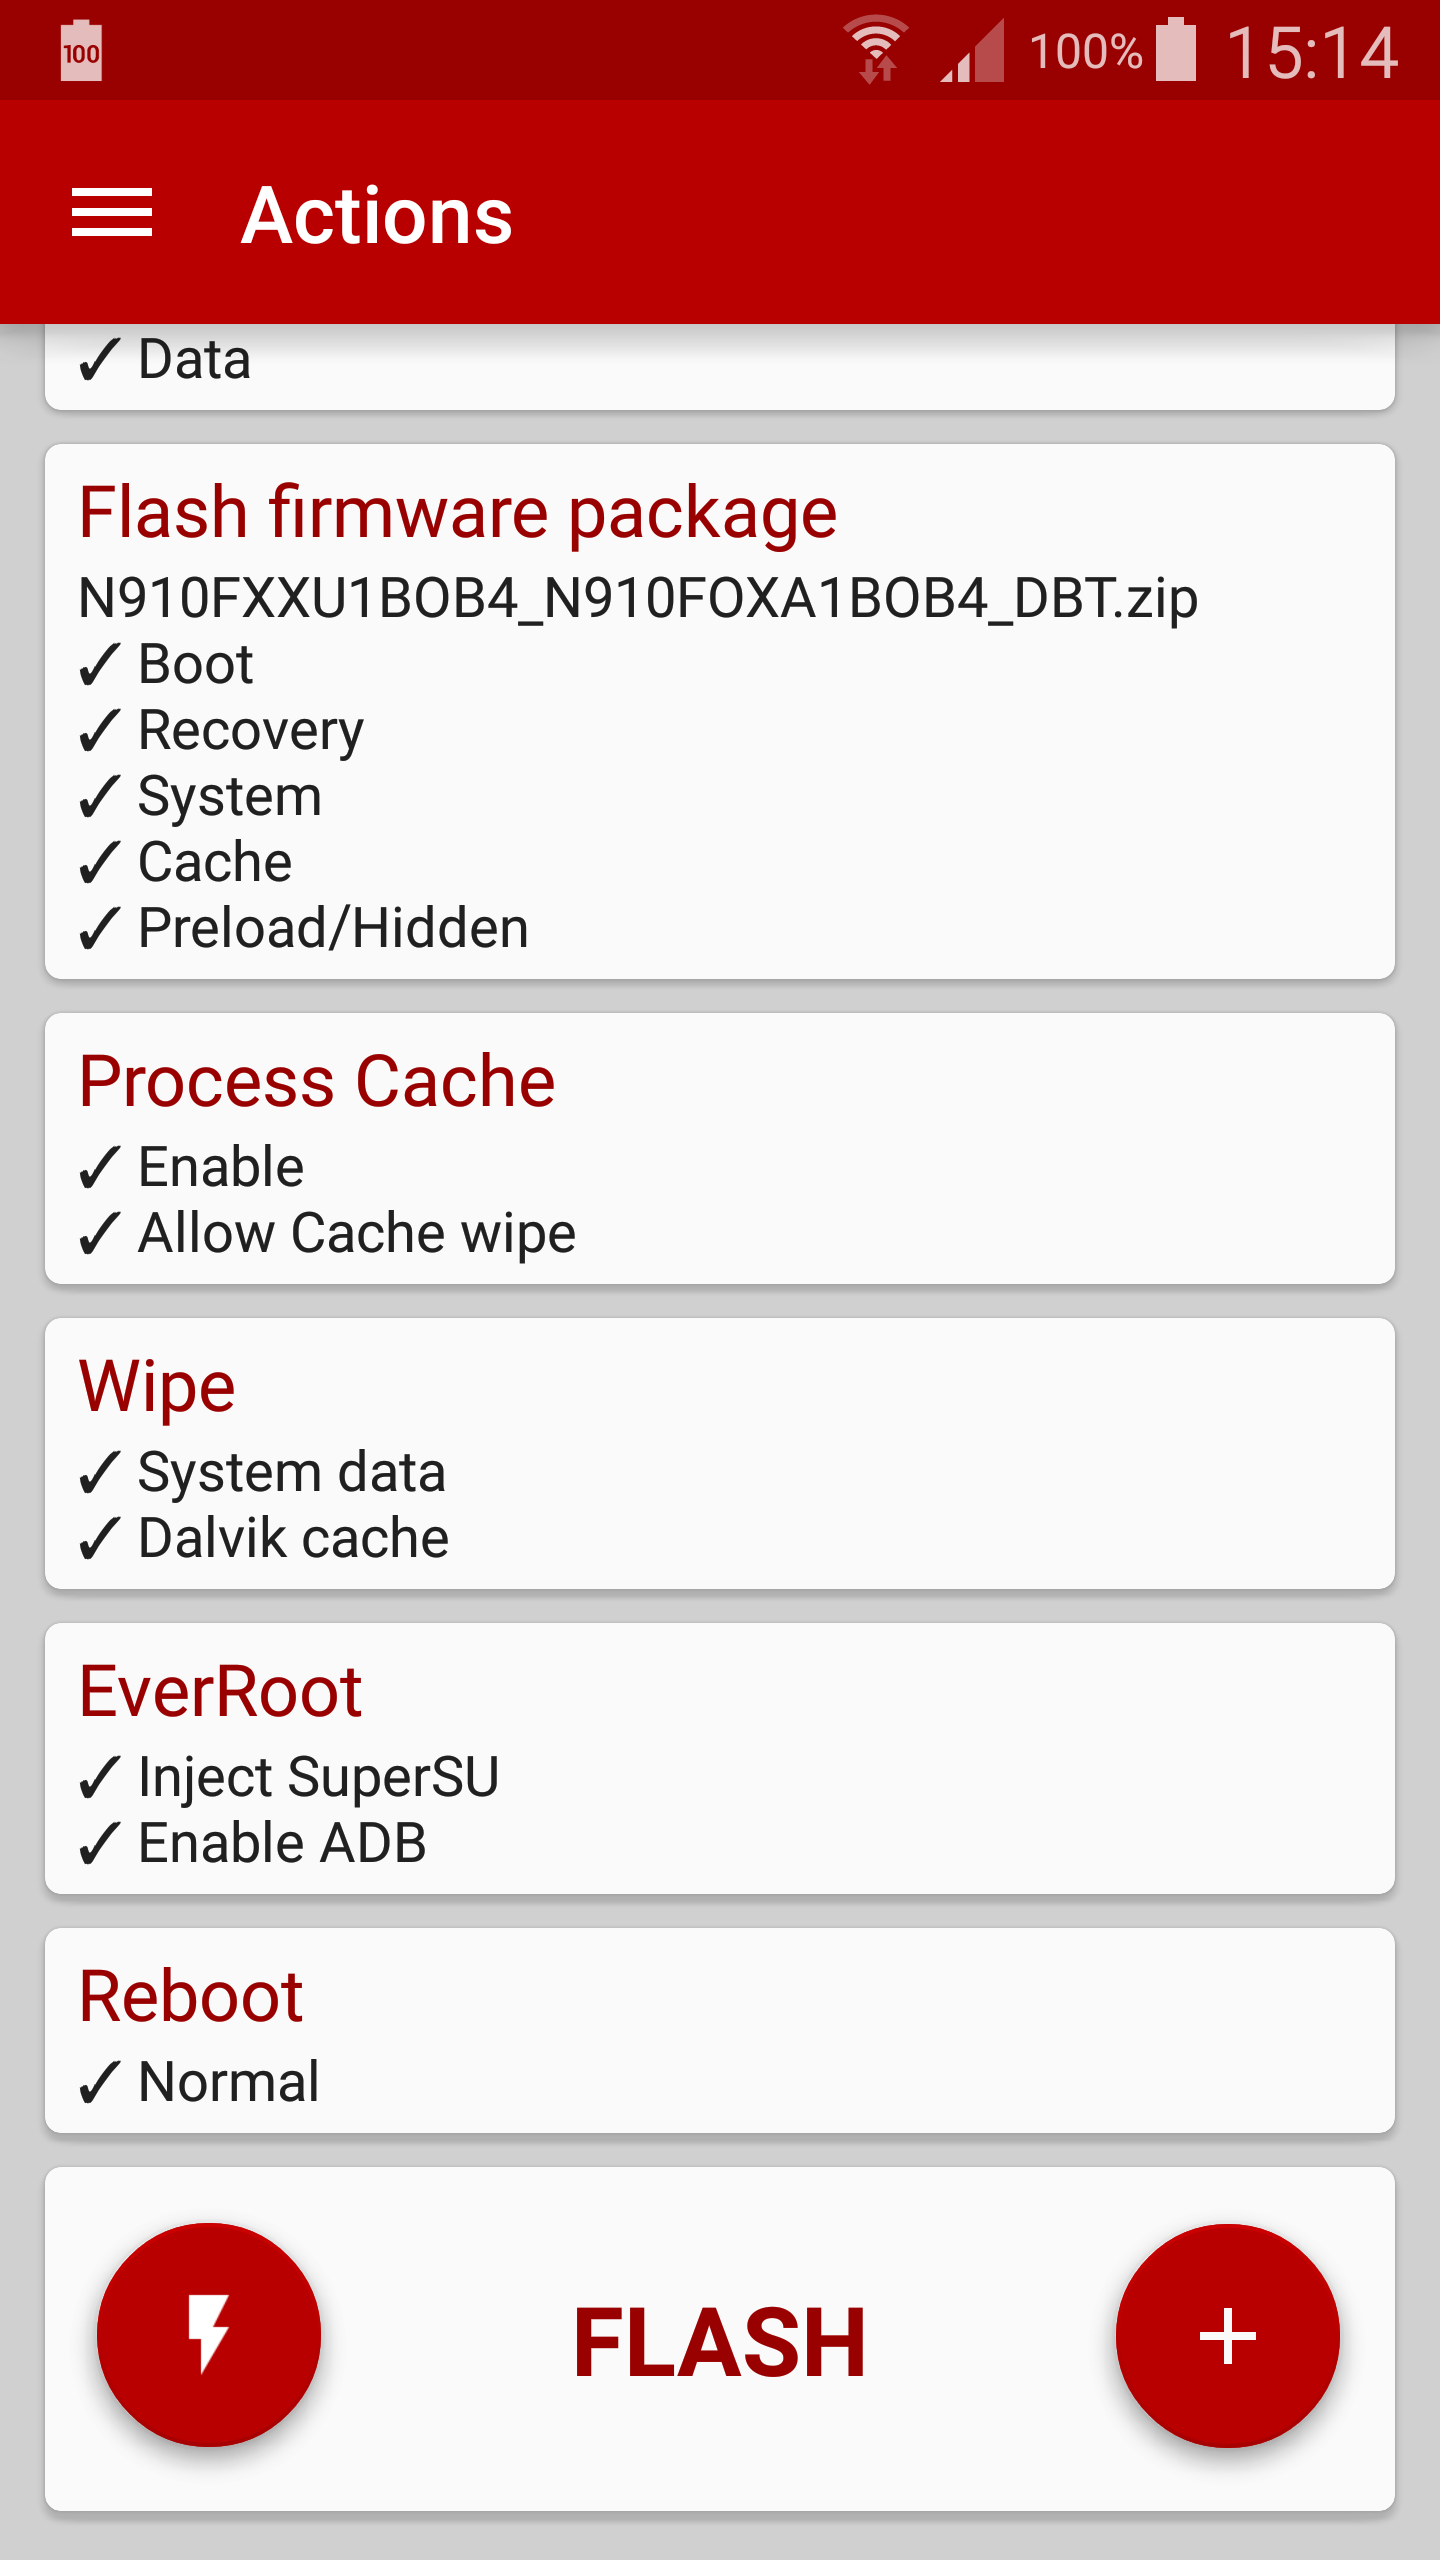 [APPLICATION ANDROID - FLASHFIRE] Flasher sans recovery par Chainfire [4.2+][Root][Gratuit/payant] Attachment